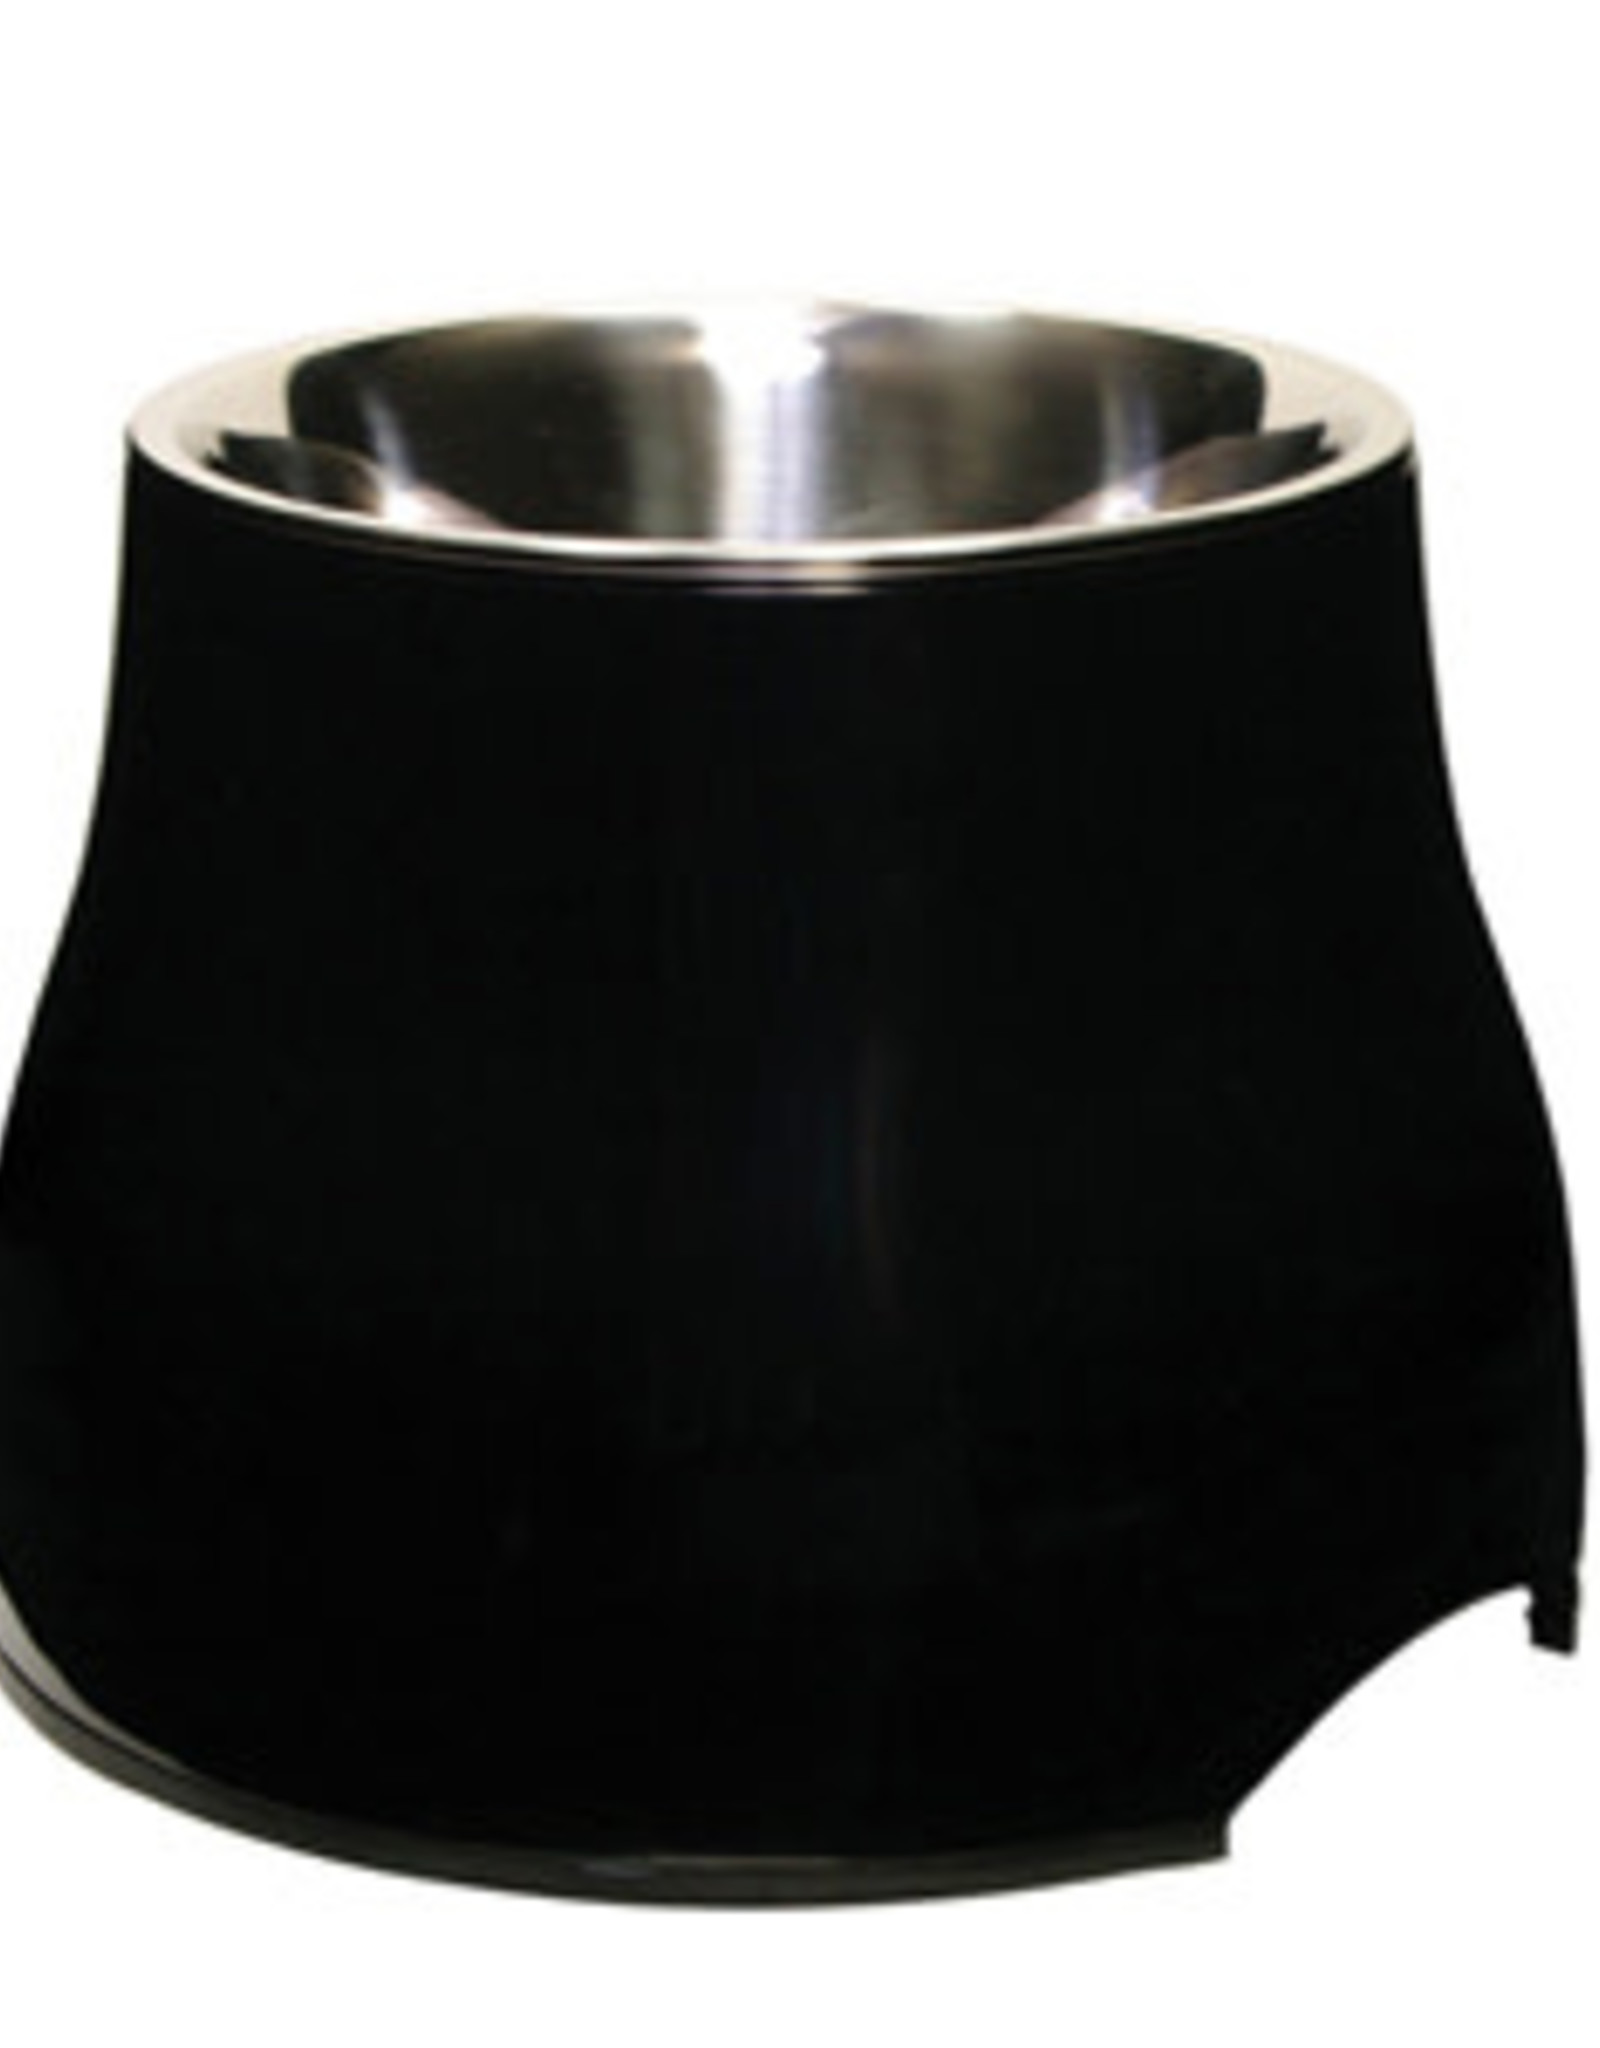 Dogit Elevated Dish Black - Small